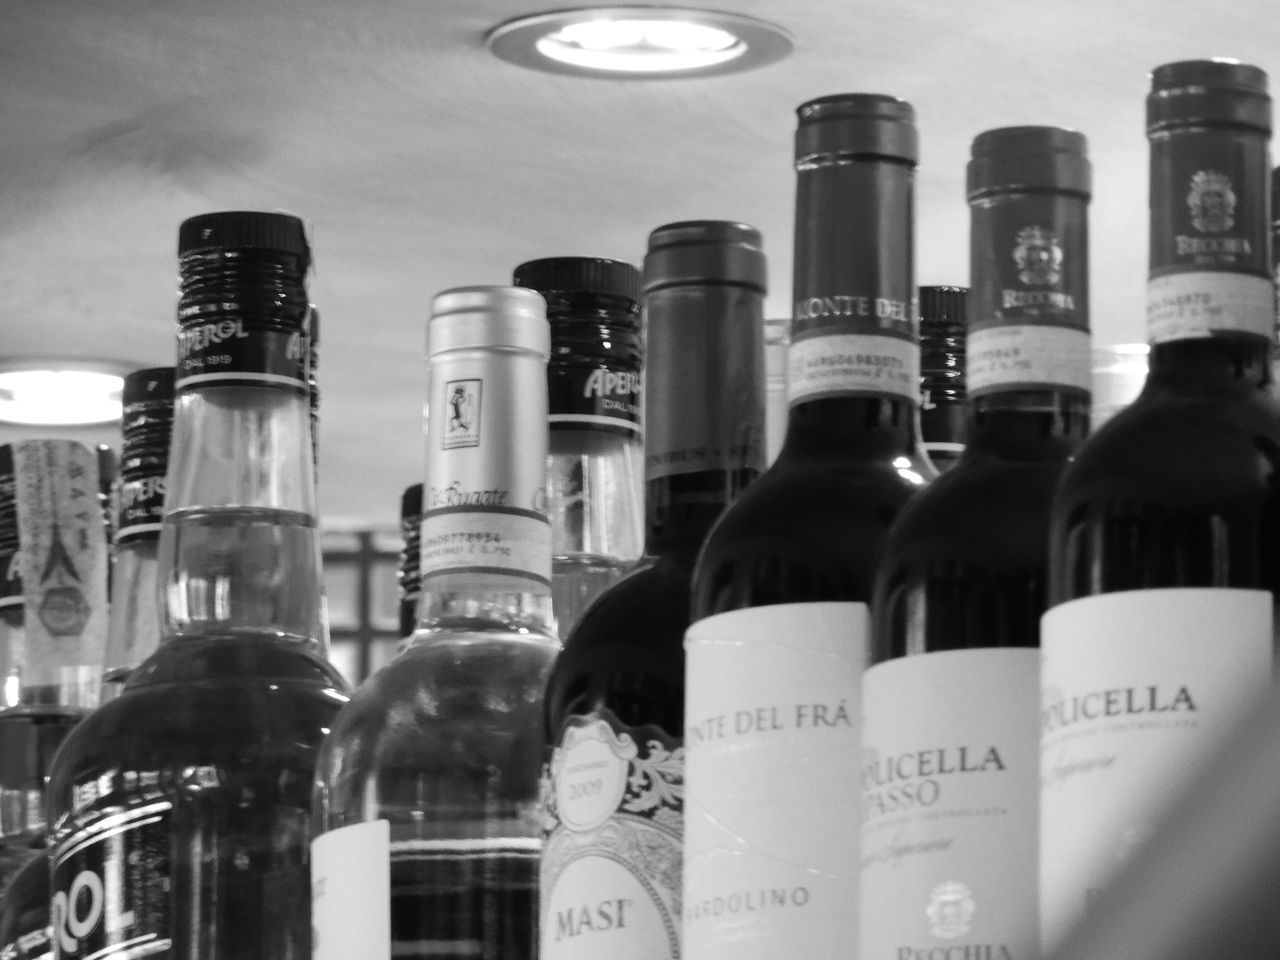 Arrangement Bottle Bottle Art Bottle Collection Bottle Of Wine Bottles Bottles Collection Bottles Of Wine Day Food And Drink Indoors  Large Group Of Objects No People Sky